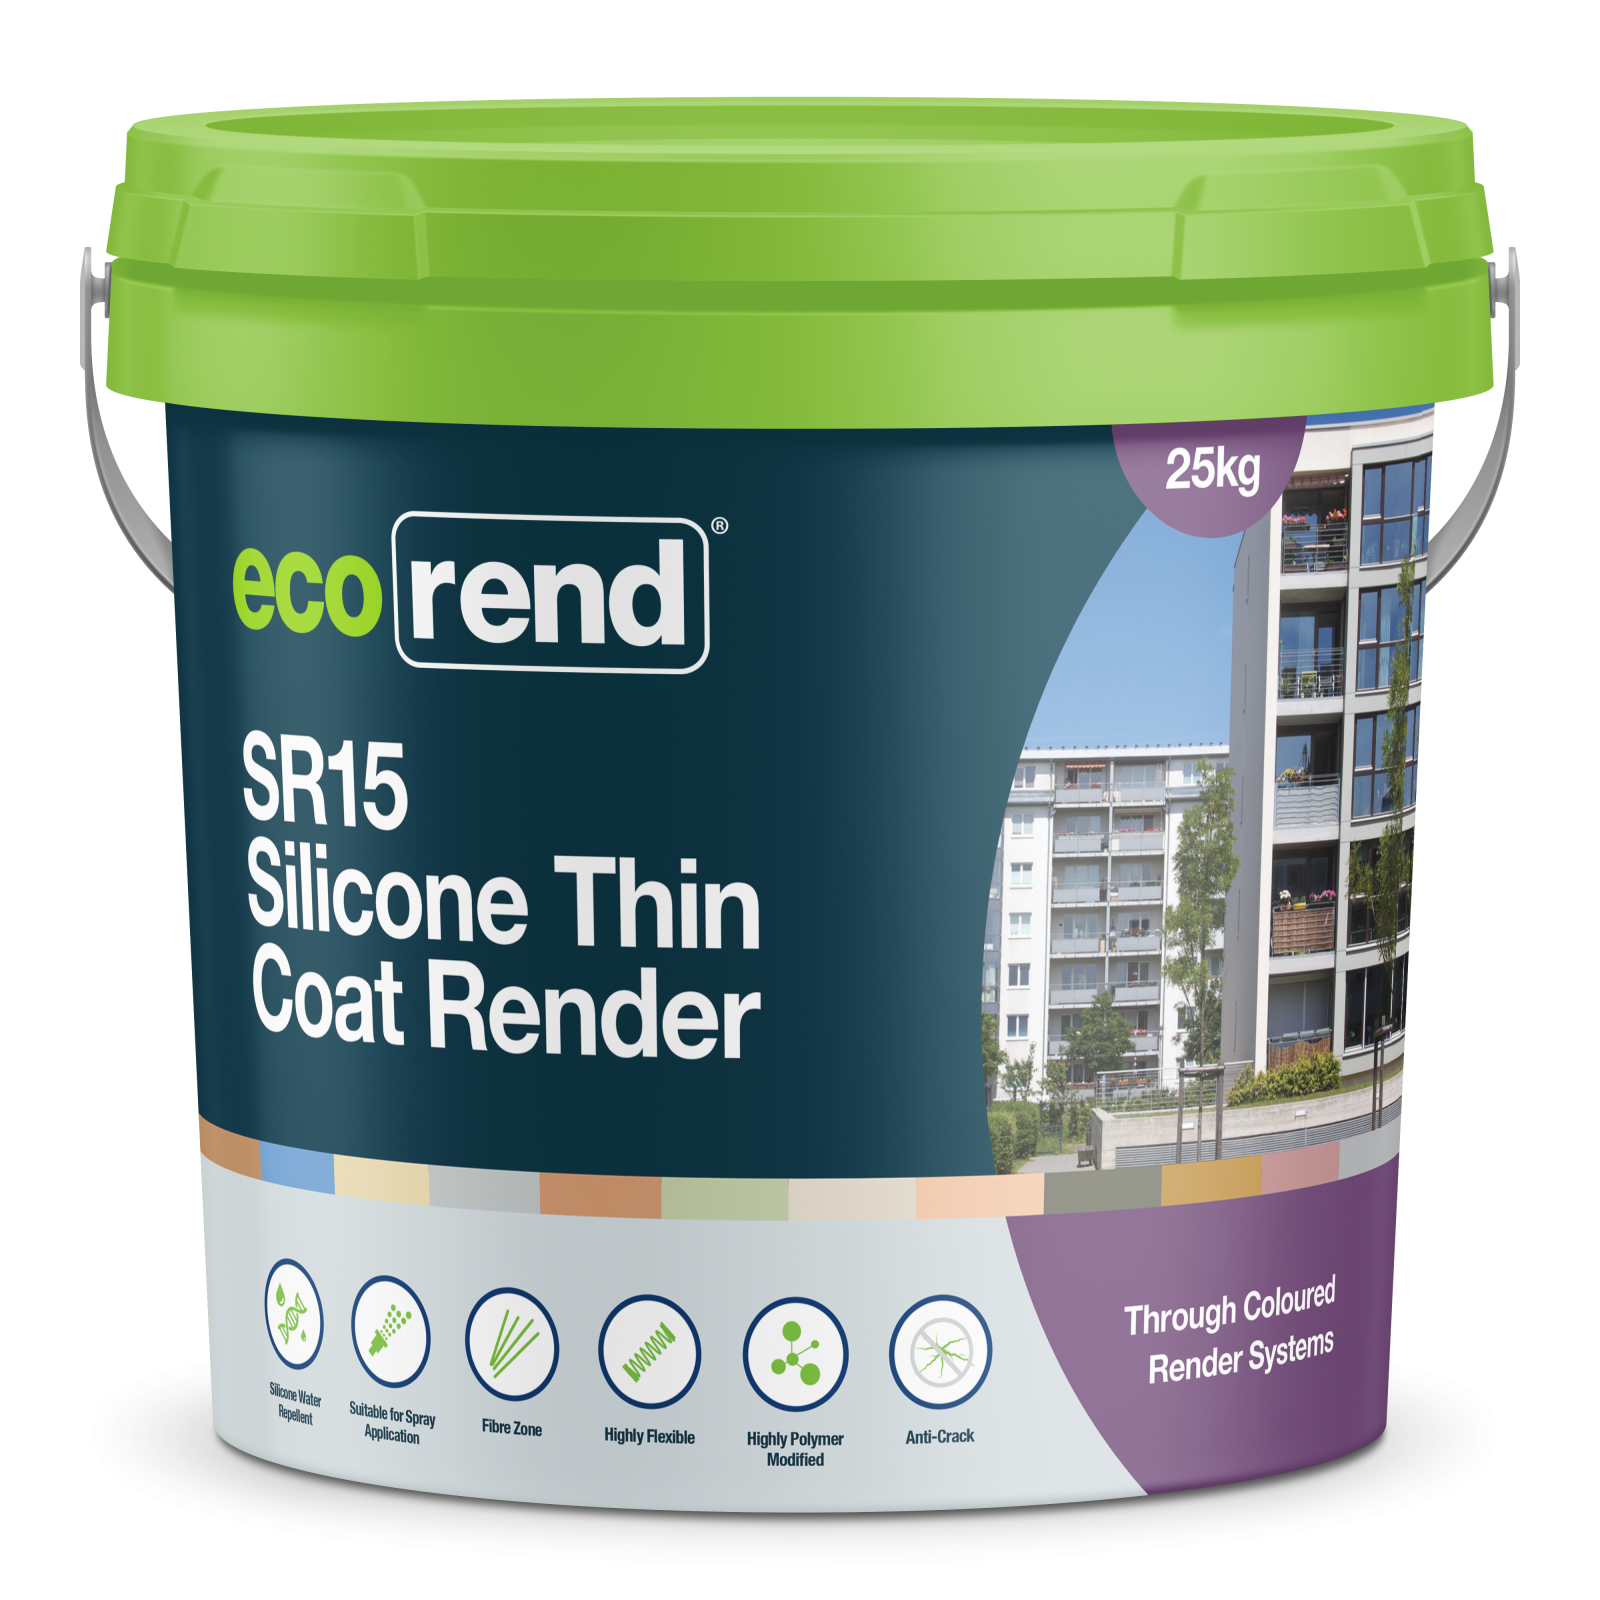 SR15 Silicone Thin Coat Render System | Thin coat render